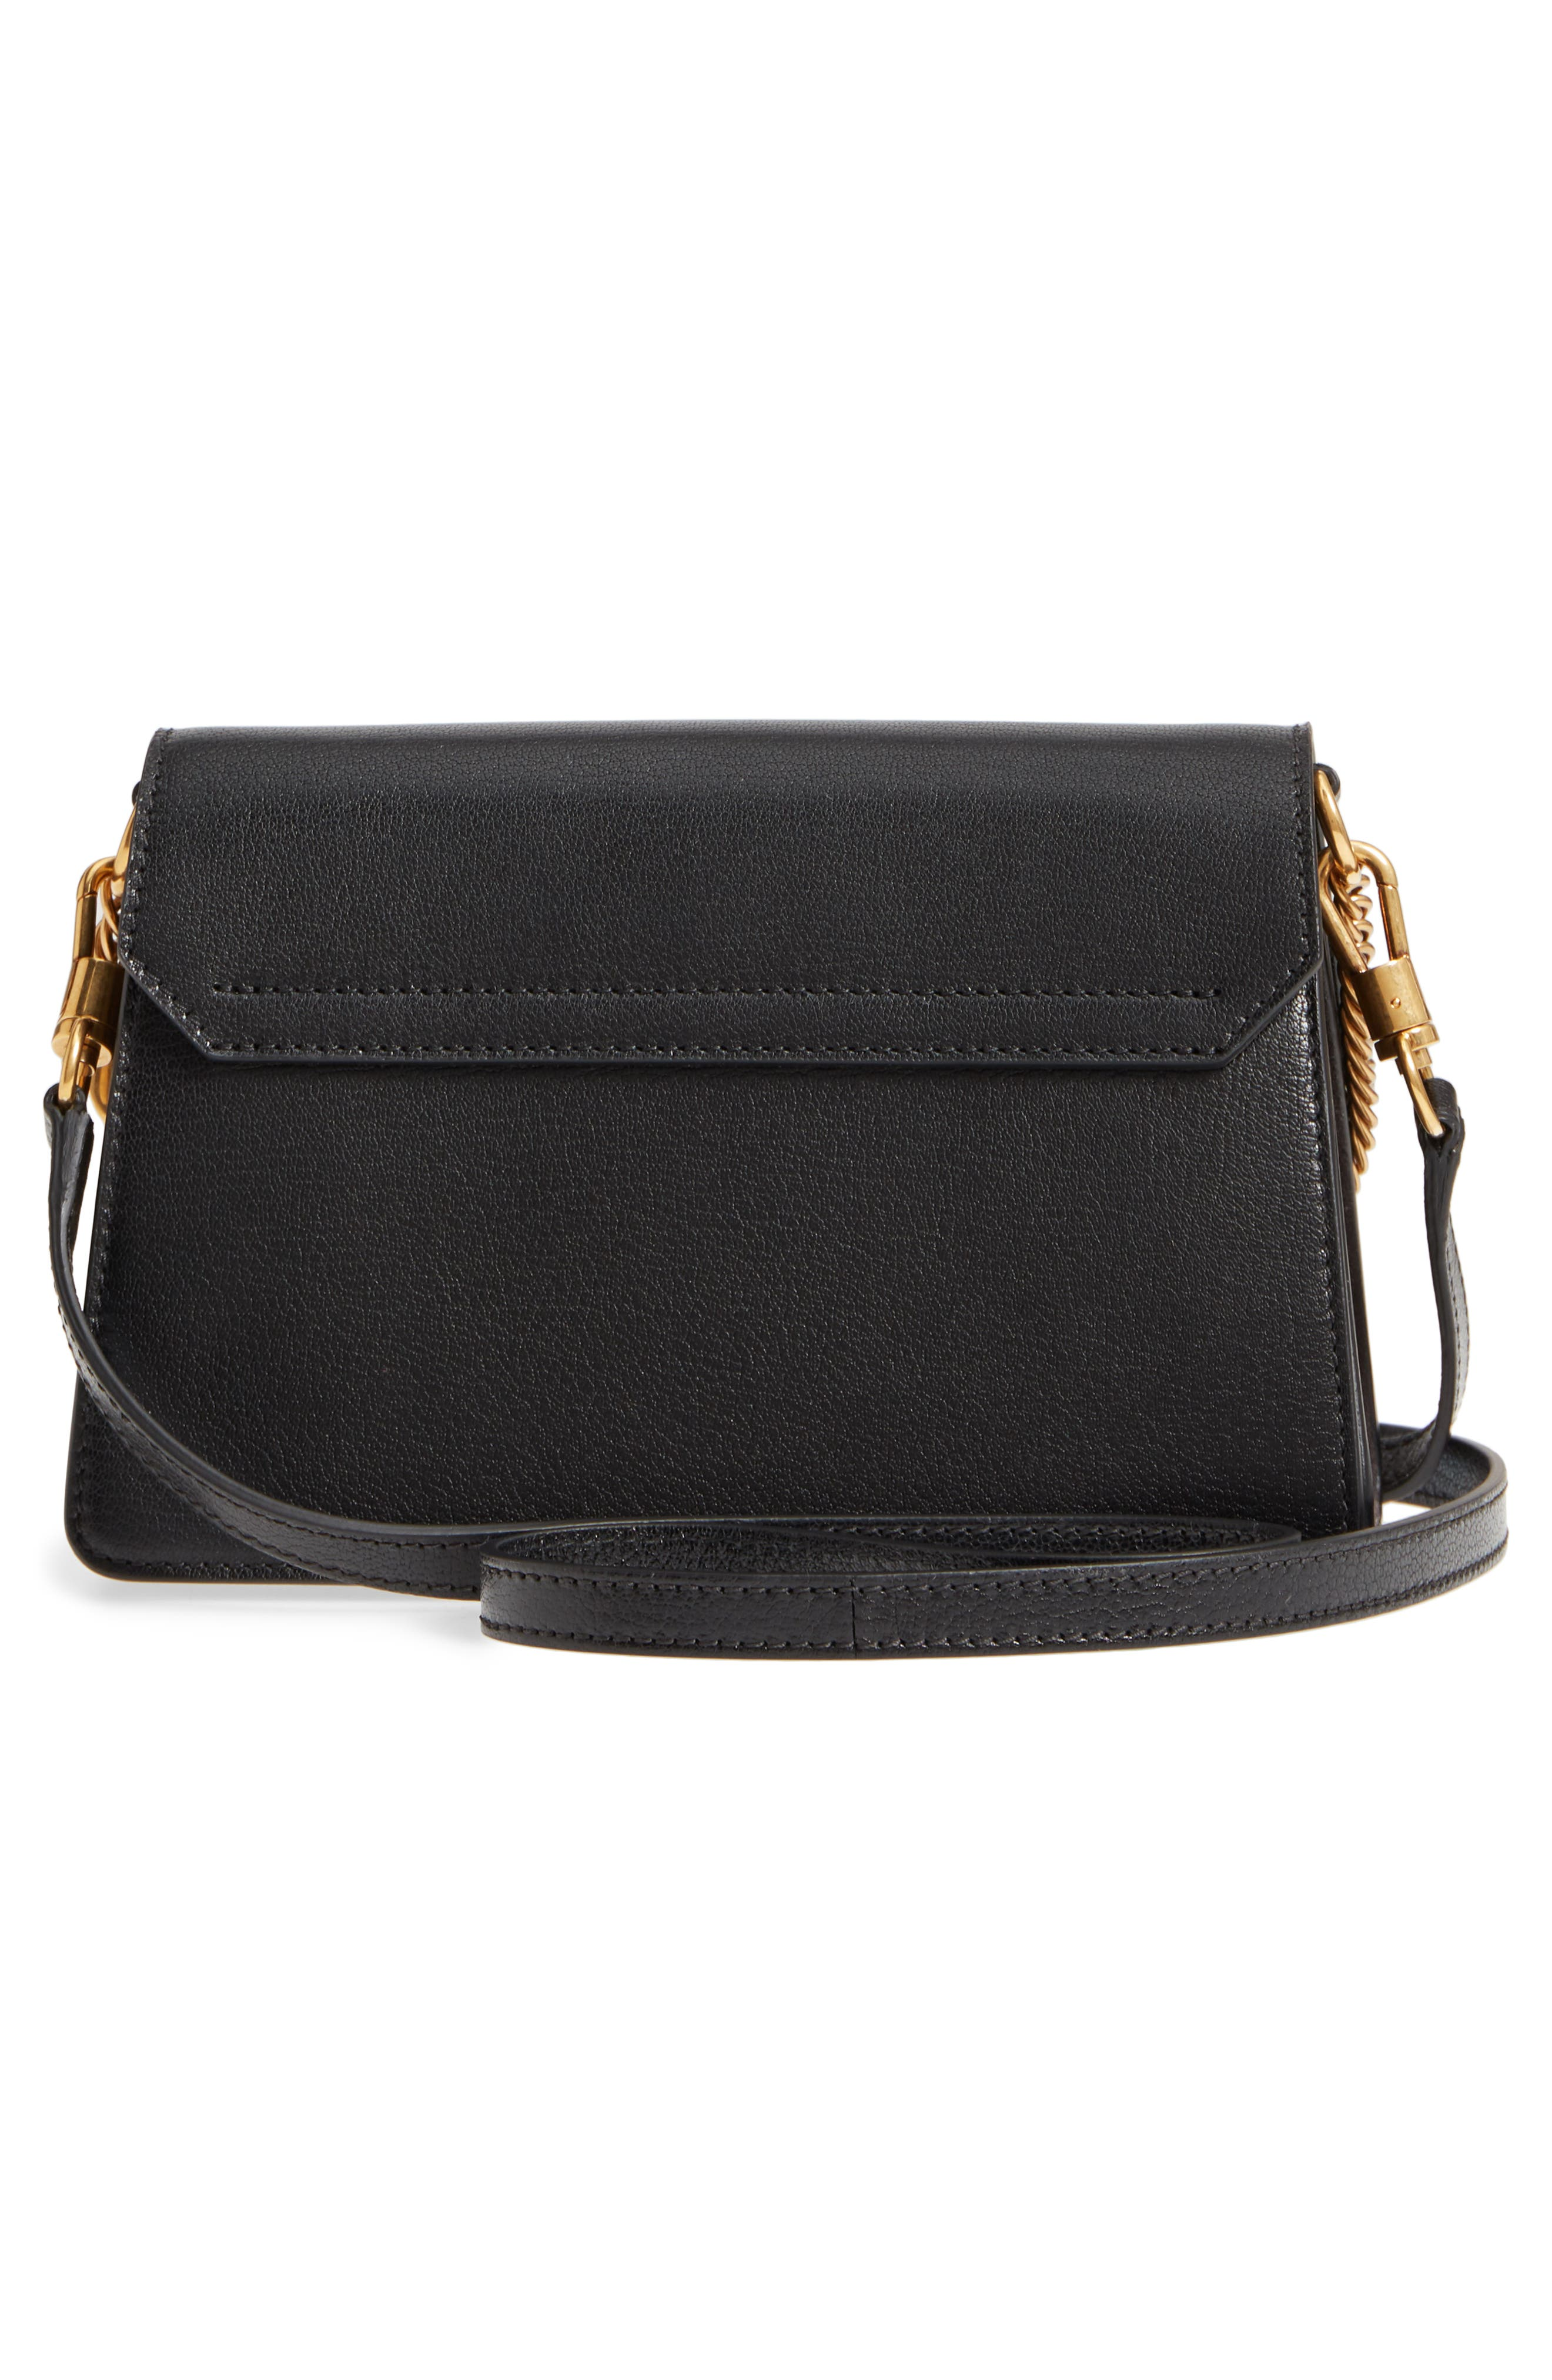 Small GV3 Leather & Suede Crossbody Bag,                             Alternate thumbnail 3, color,                             BLACK/ GREY